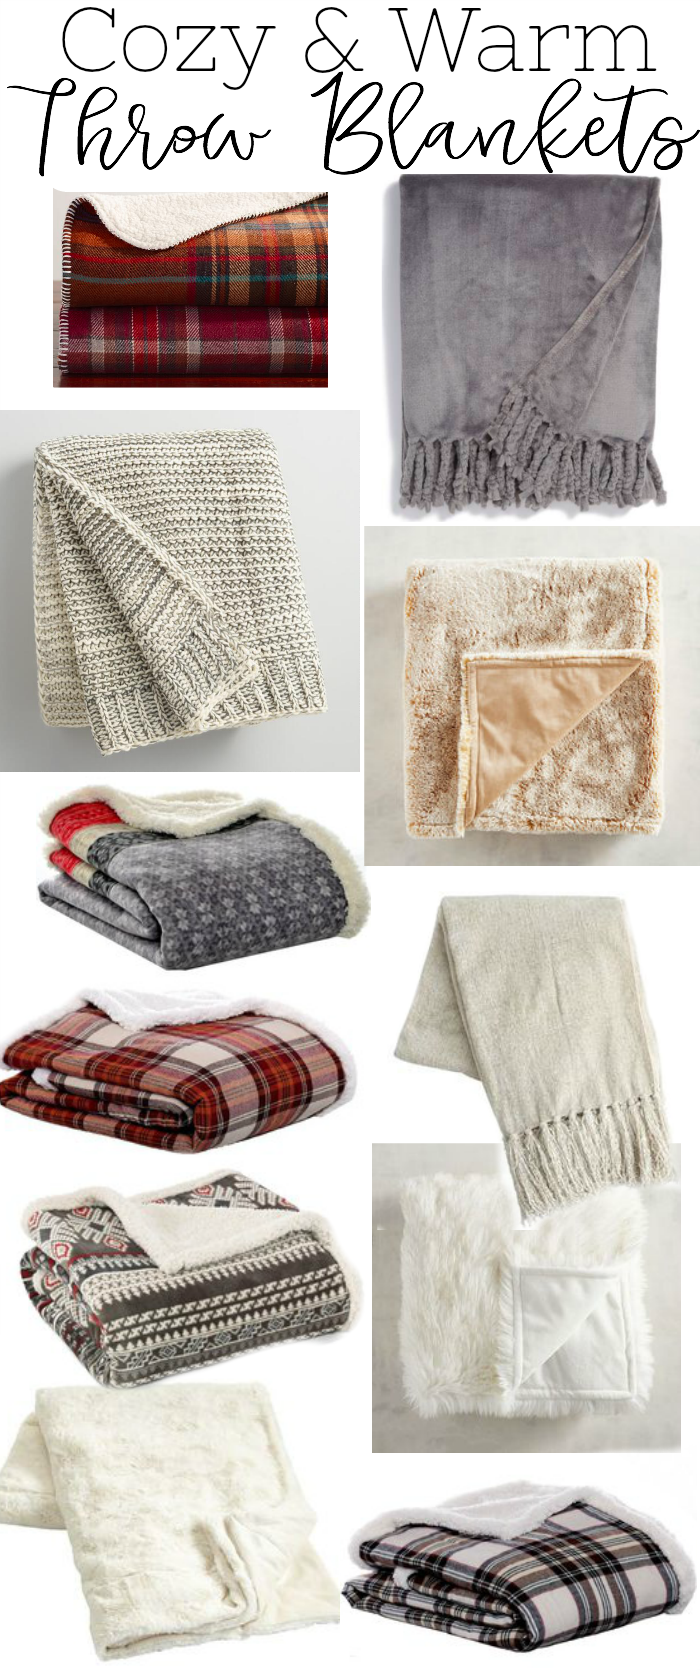 Cozy and warm throw blankets for winter